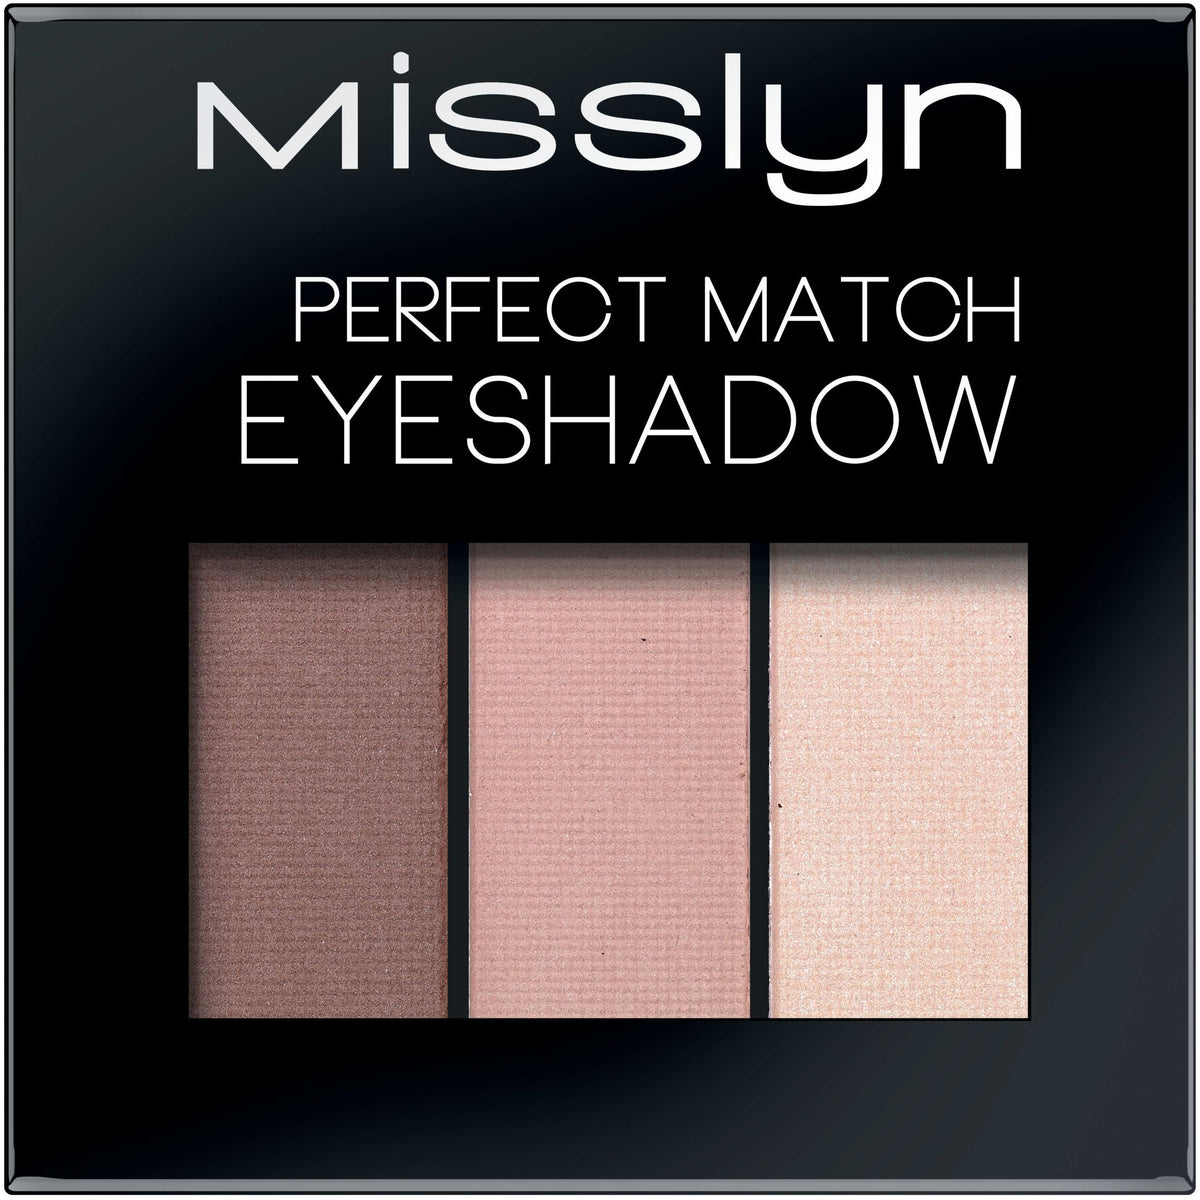 PERFECT MATCH EYESHADOW no.27